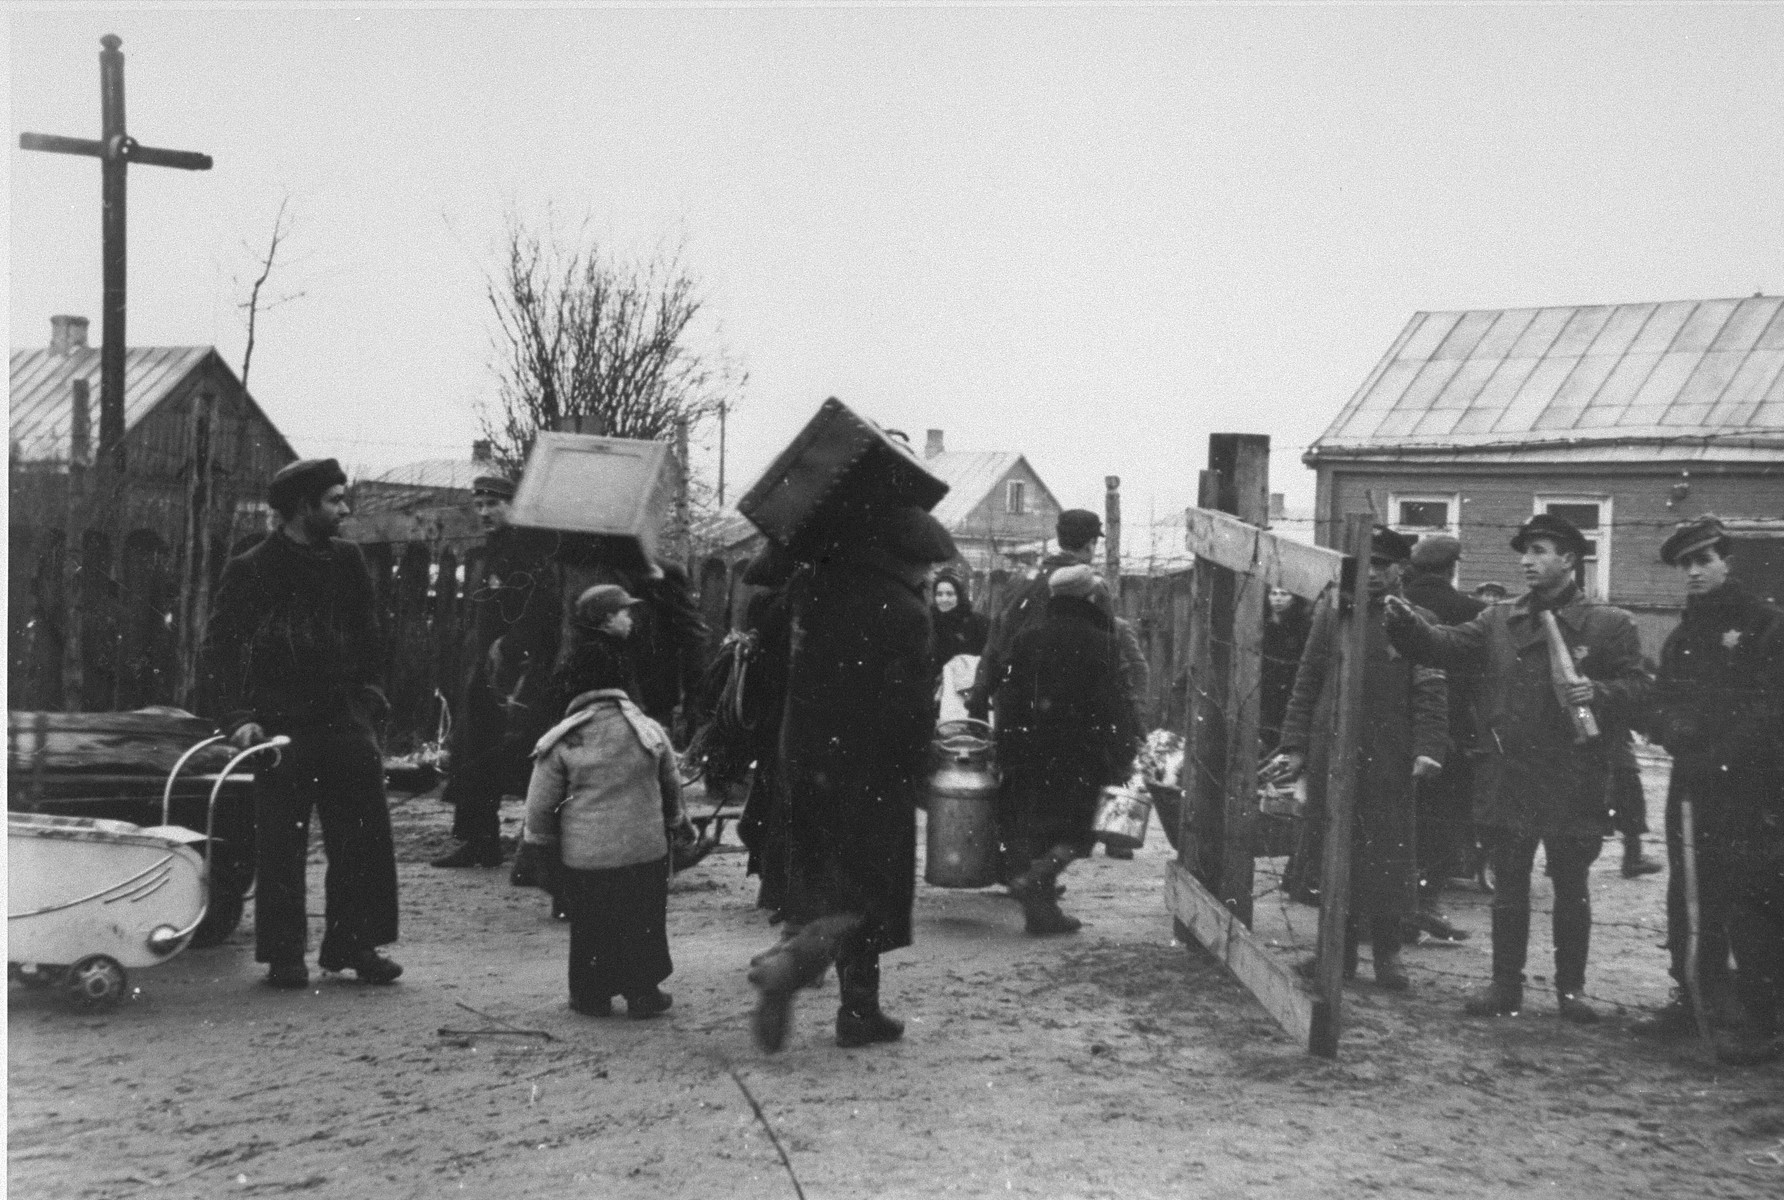 Jews move into the Kovno ghetto.   Among those pictured are Abe Malnik (on the right) and Yankel Kaplan (second from the right), a ghetto firefighter.